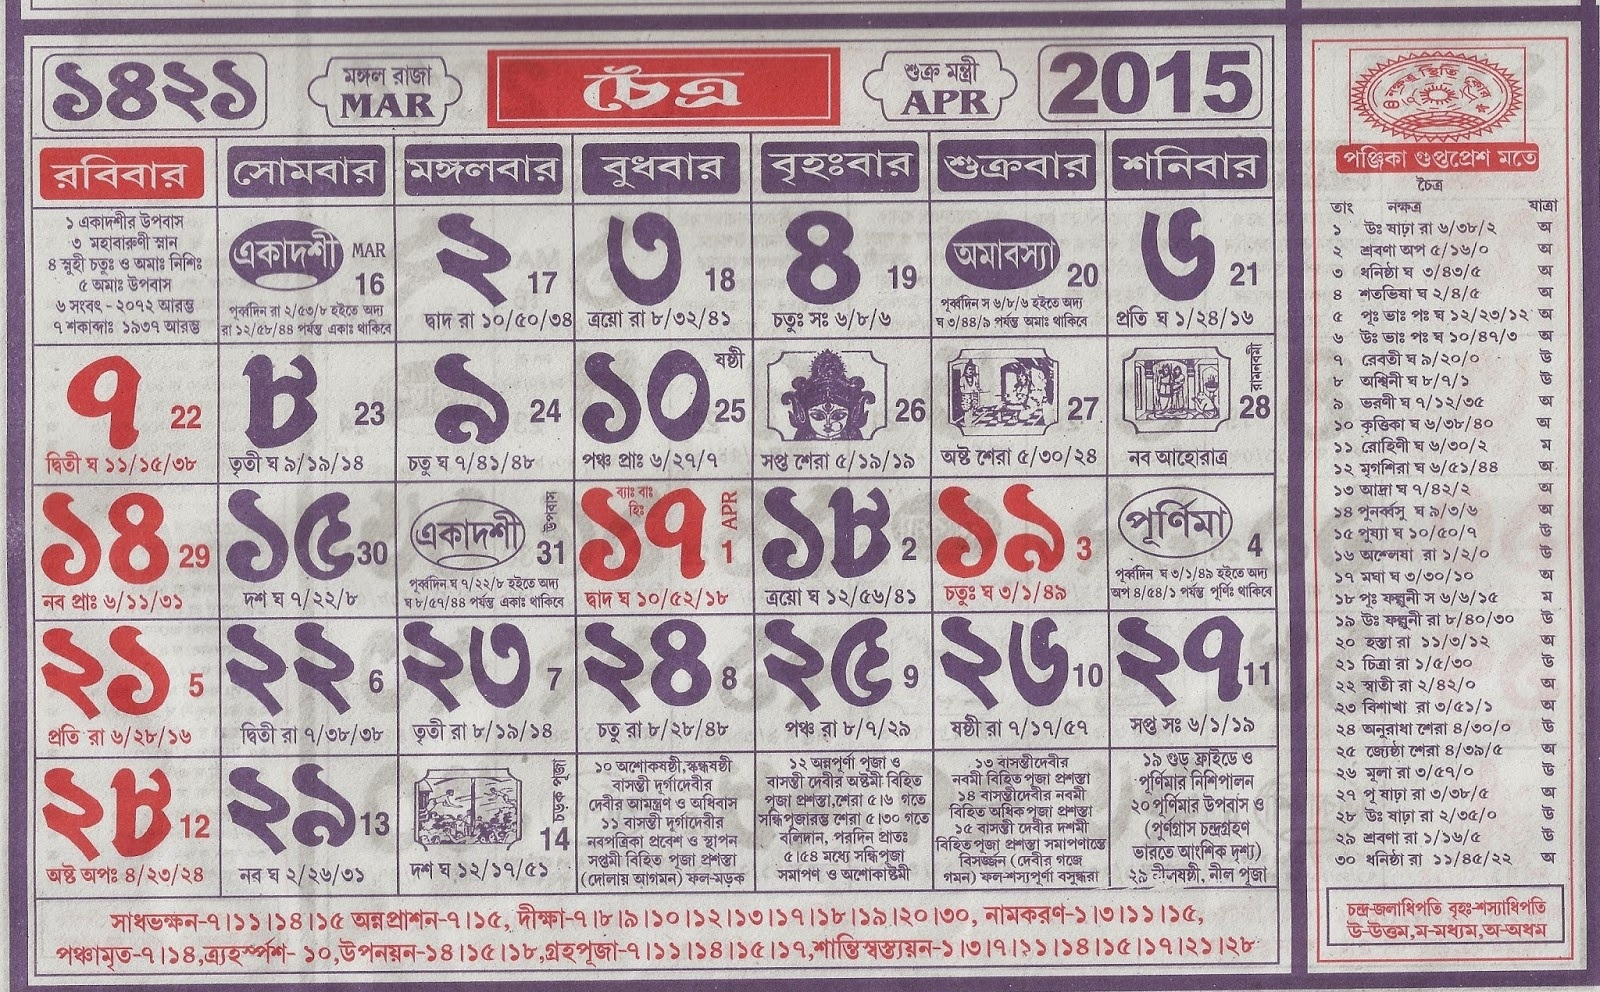 Bengali Full Panjika 1419  Bengali Calander Pic This Year Free Pic Downlode